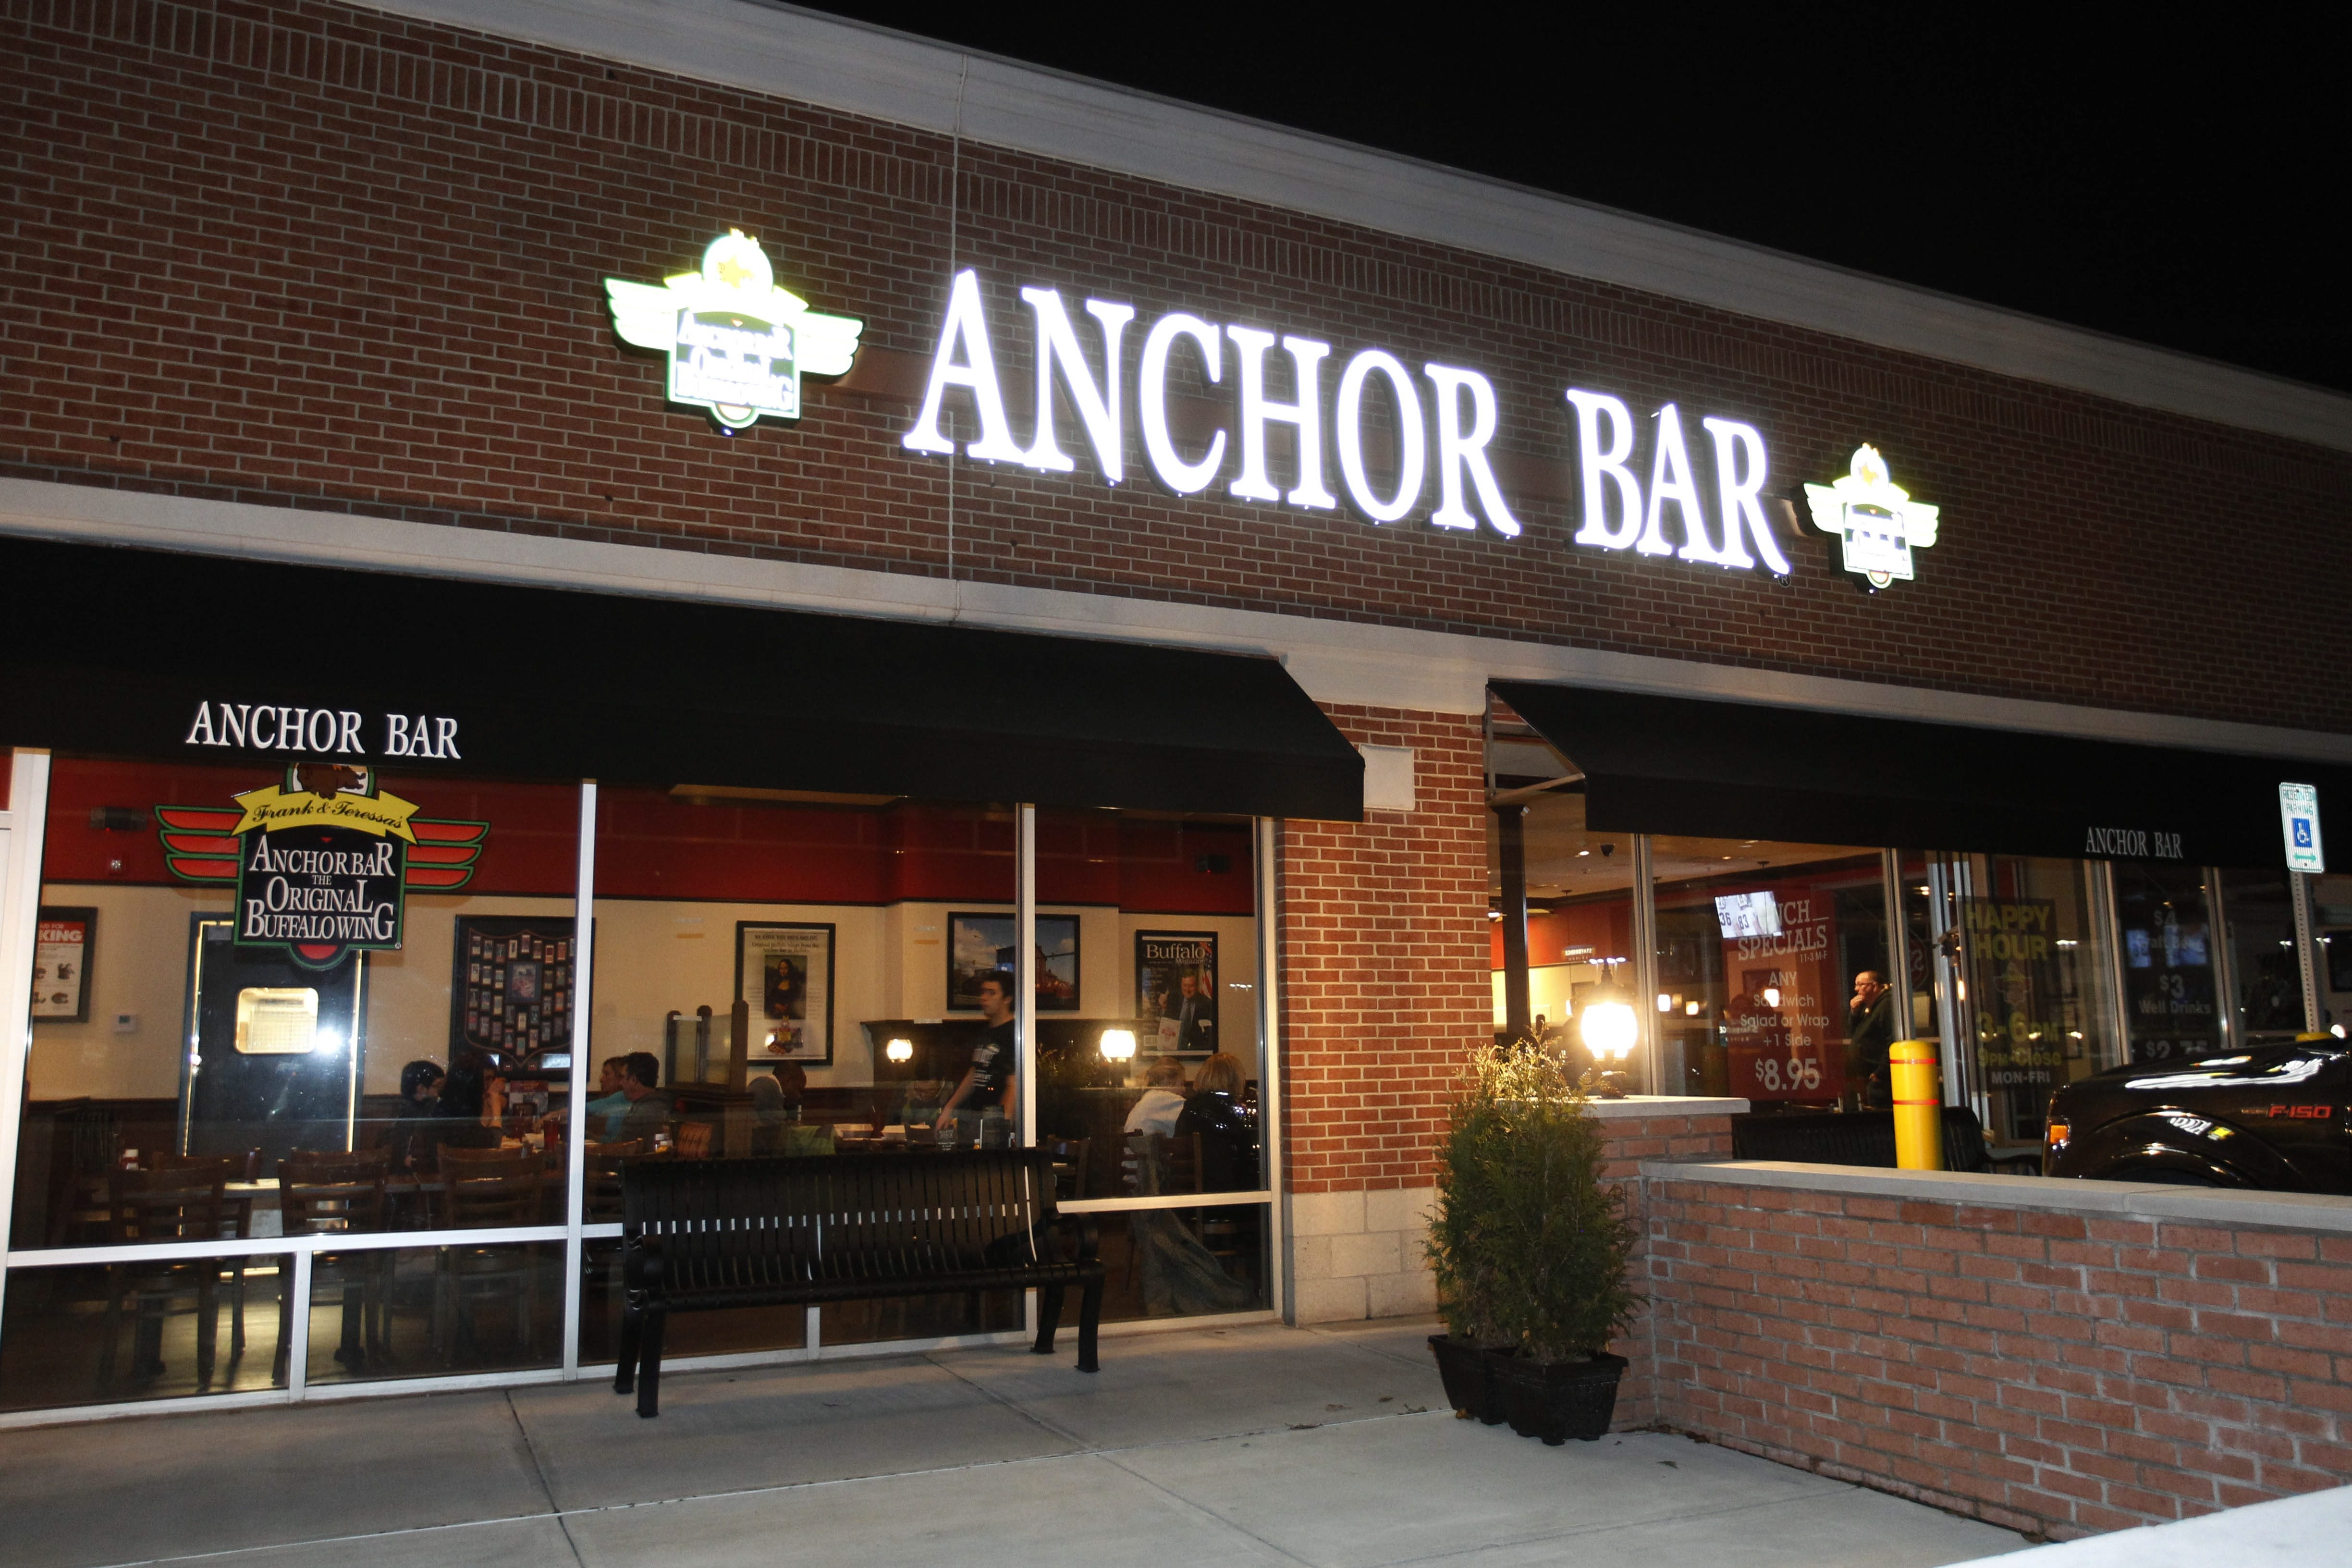 The Anchor Bar on Transit Rd. in Amherst opened at the beginning of October.  Photo taken, Thursday, Dec. 4, 2014.  (Sharon Cantillon/Buffalo News)